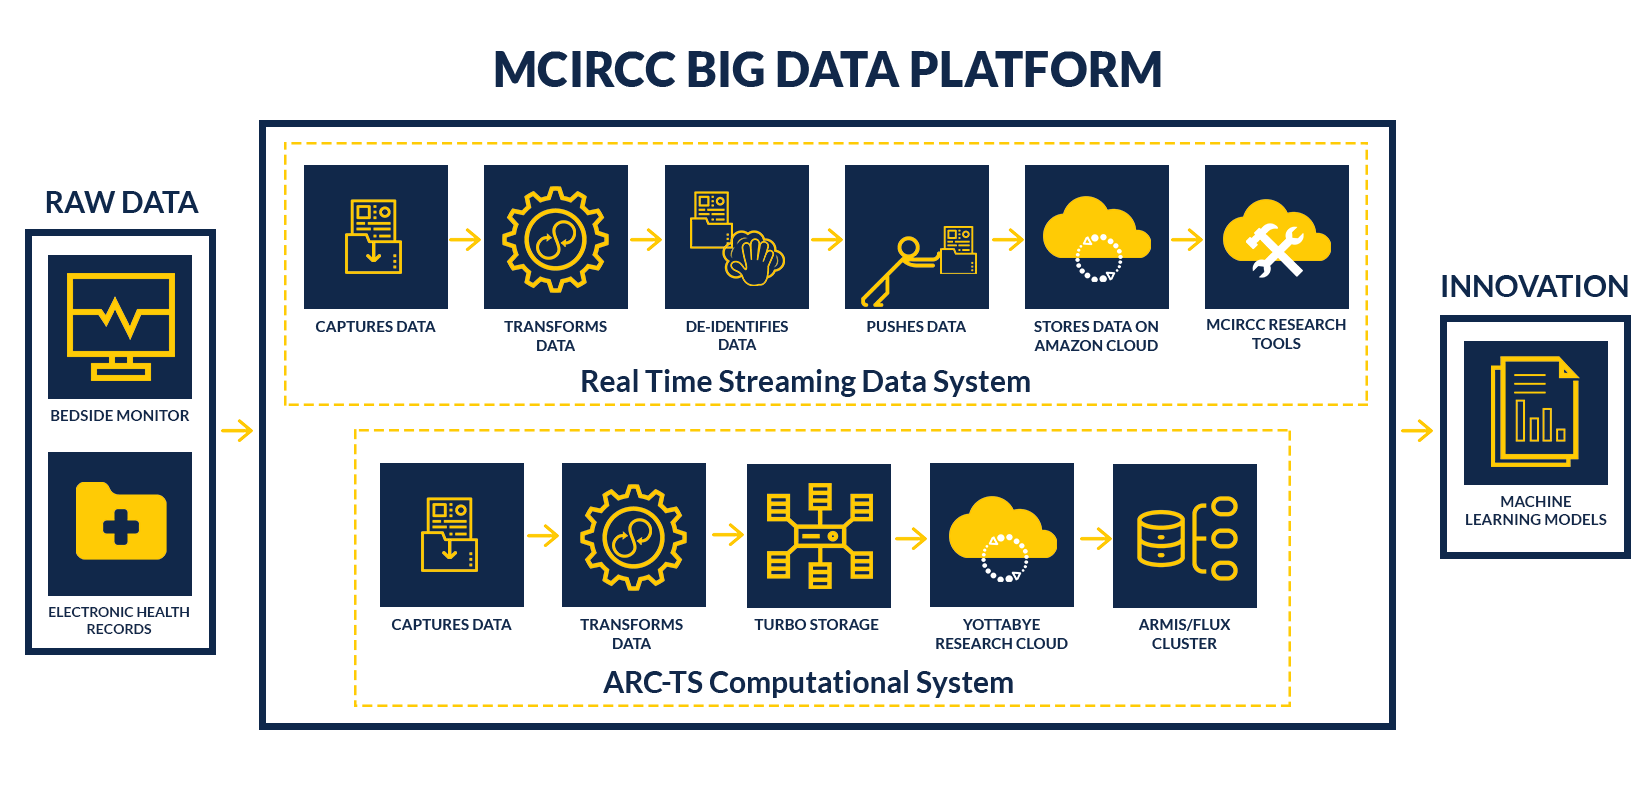 MOST RECENT - MCIRCC Big Data Platform.png